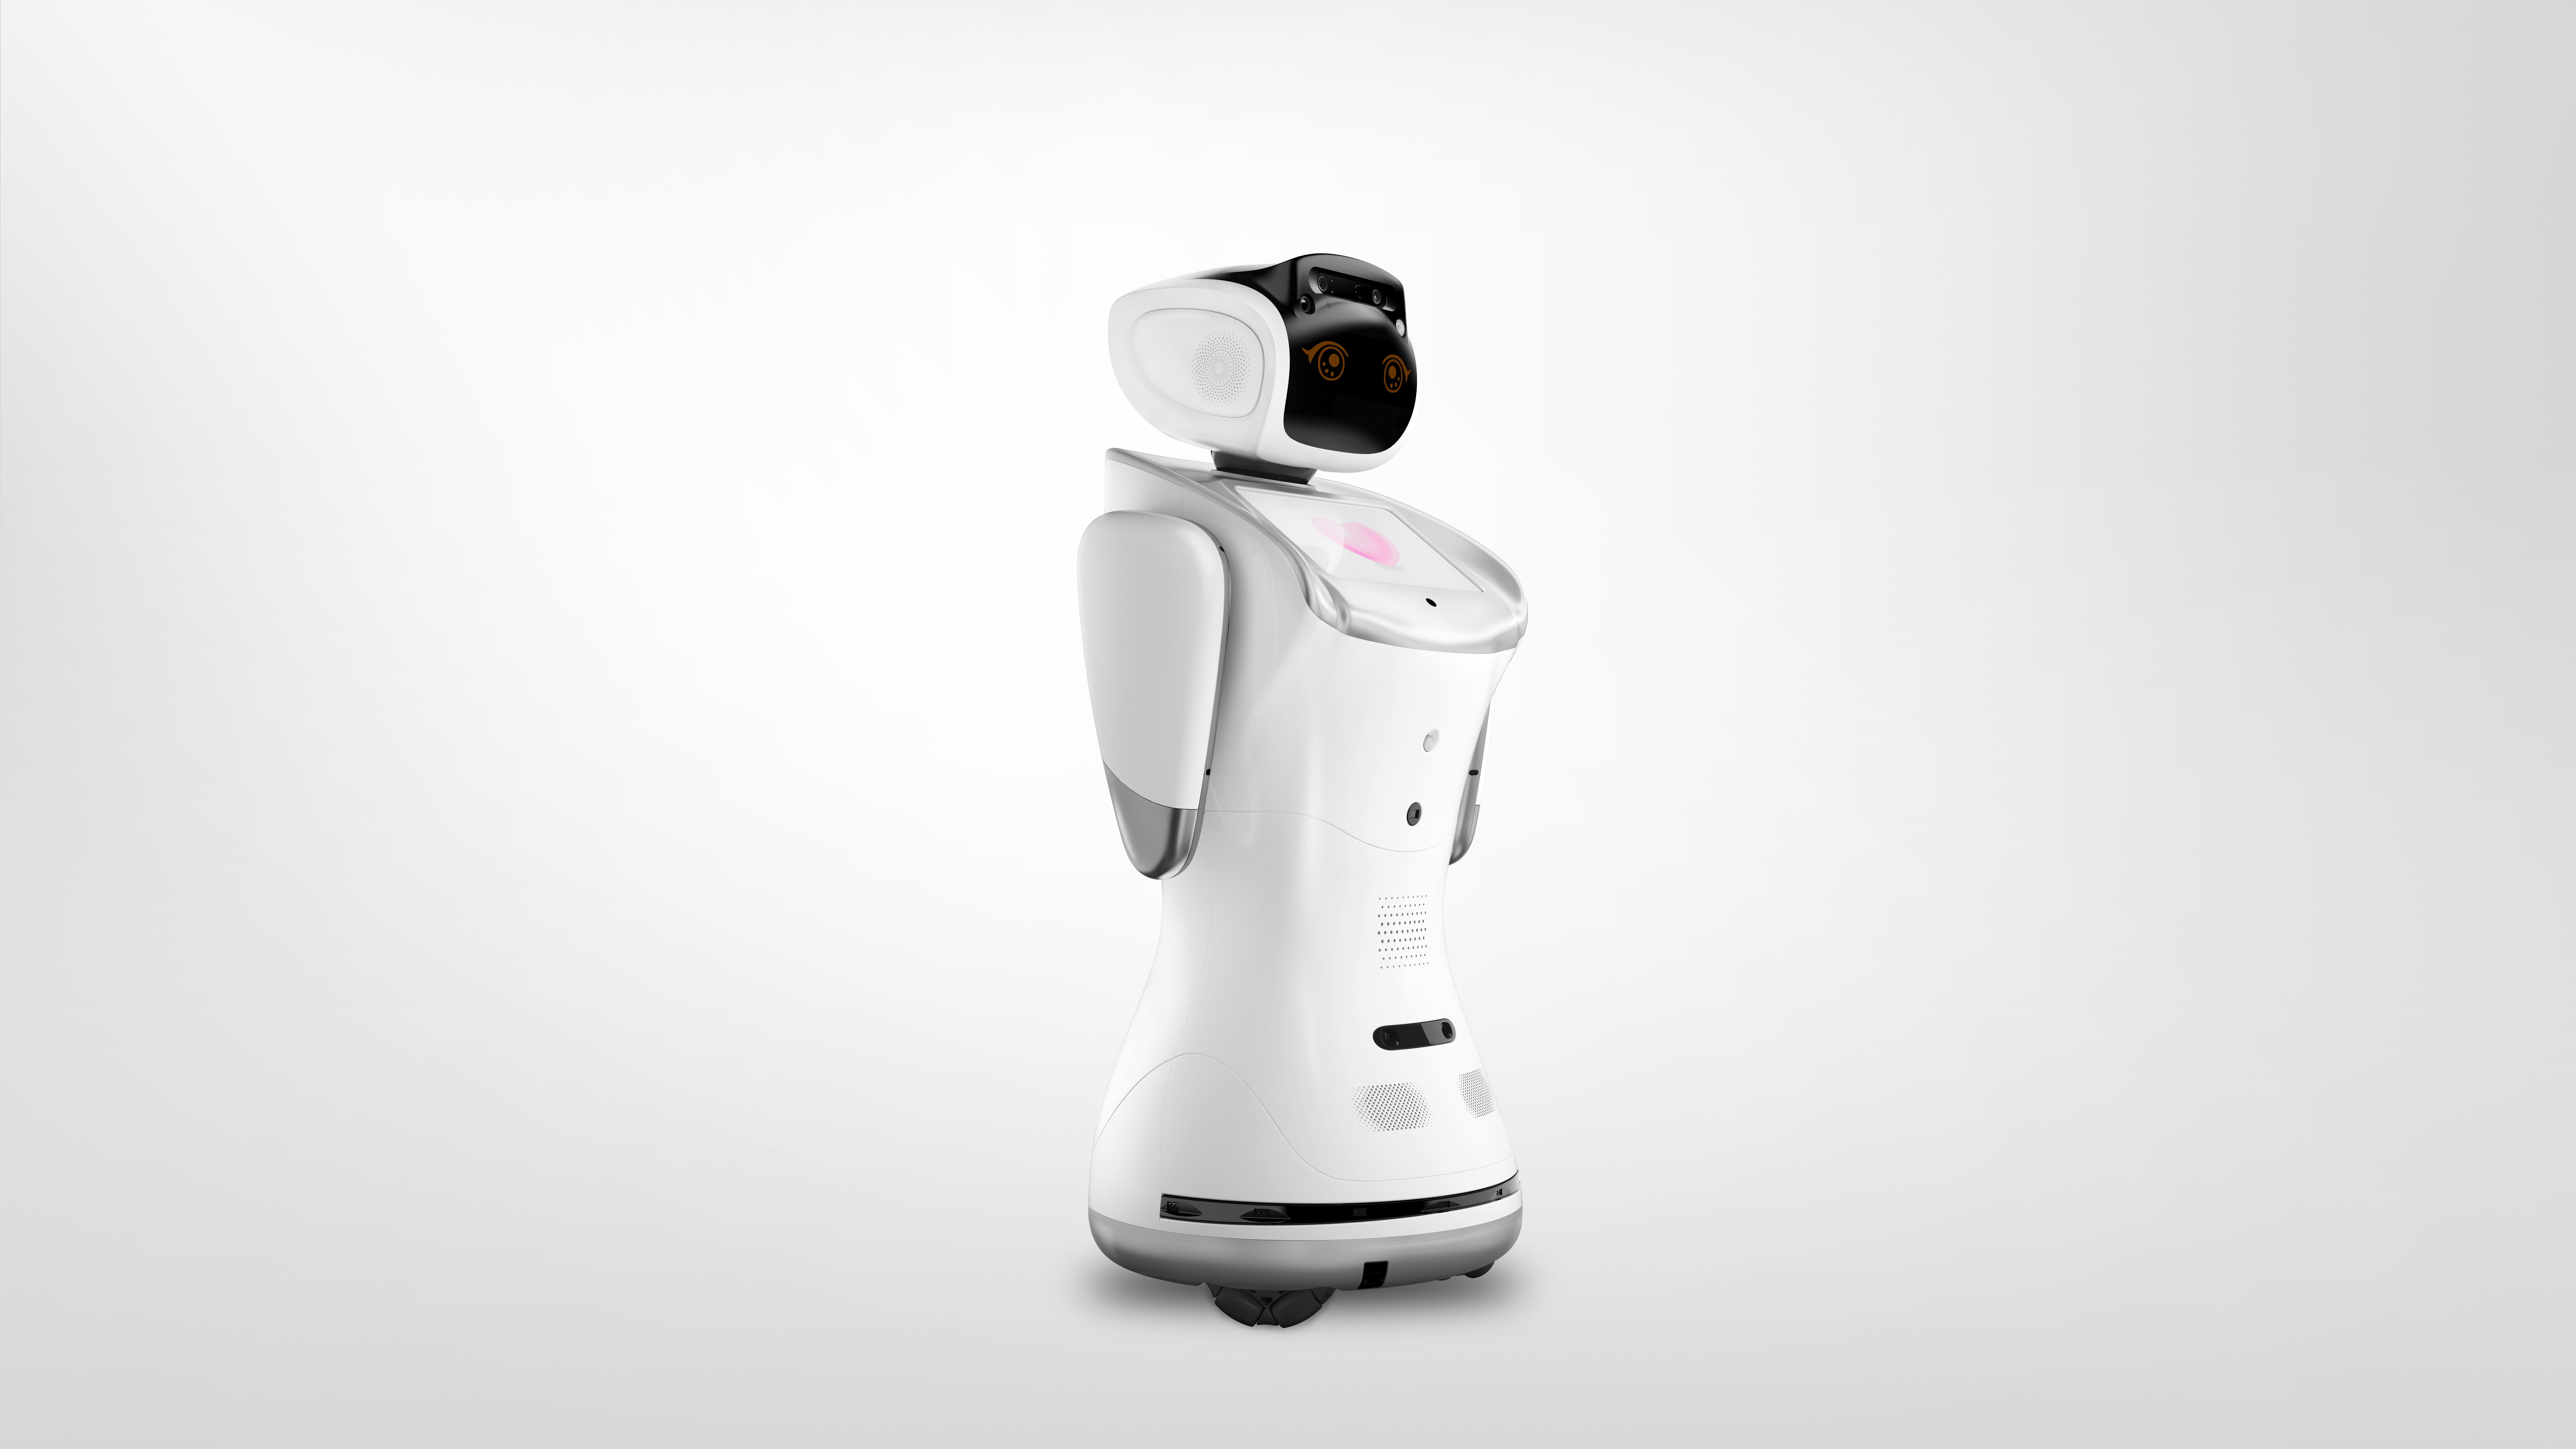 Sanbot picture